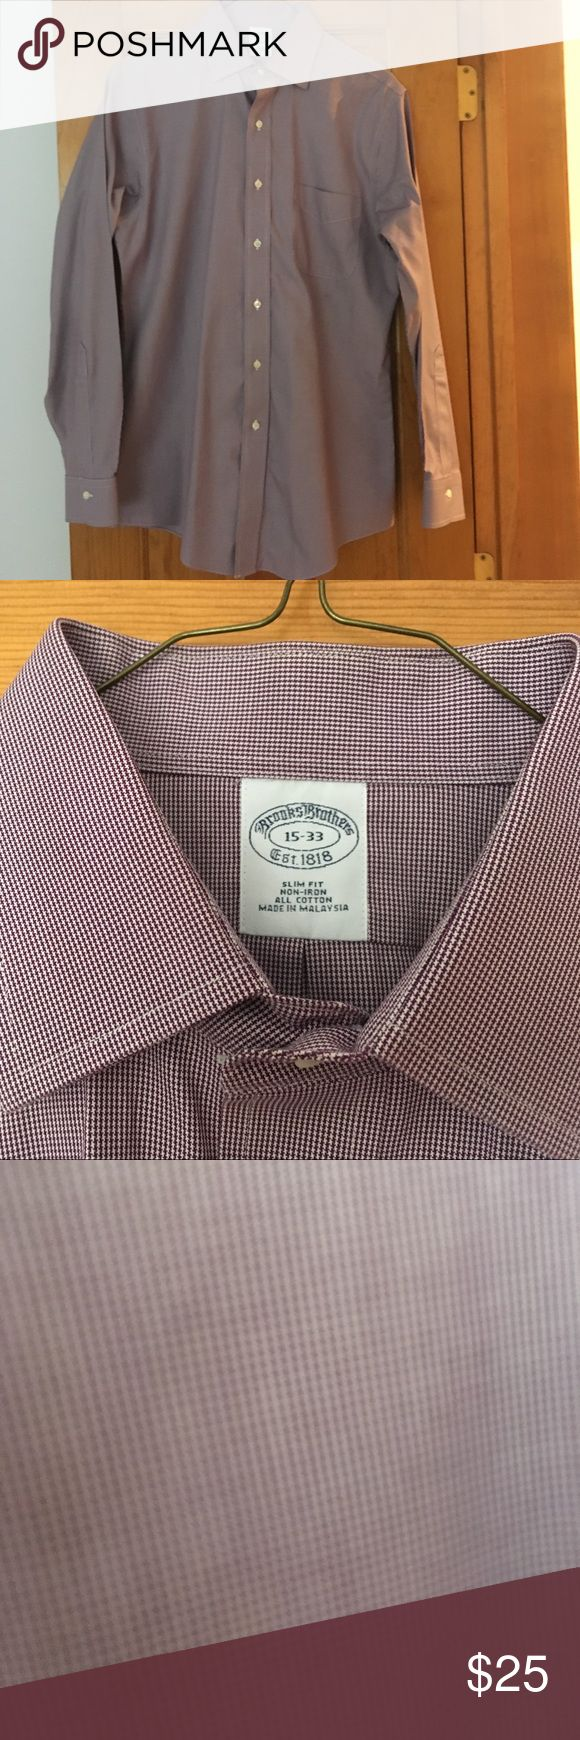 Brooks Brothers Slim Fit non-iron dress shirt Brooks Brothers Slim Fit non-iron dress shirt in small purple check in excellent condition. Brooks Brothers Shirts Dress Shirts